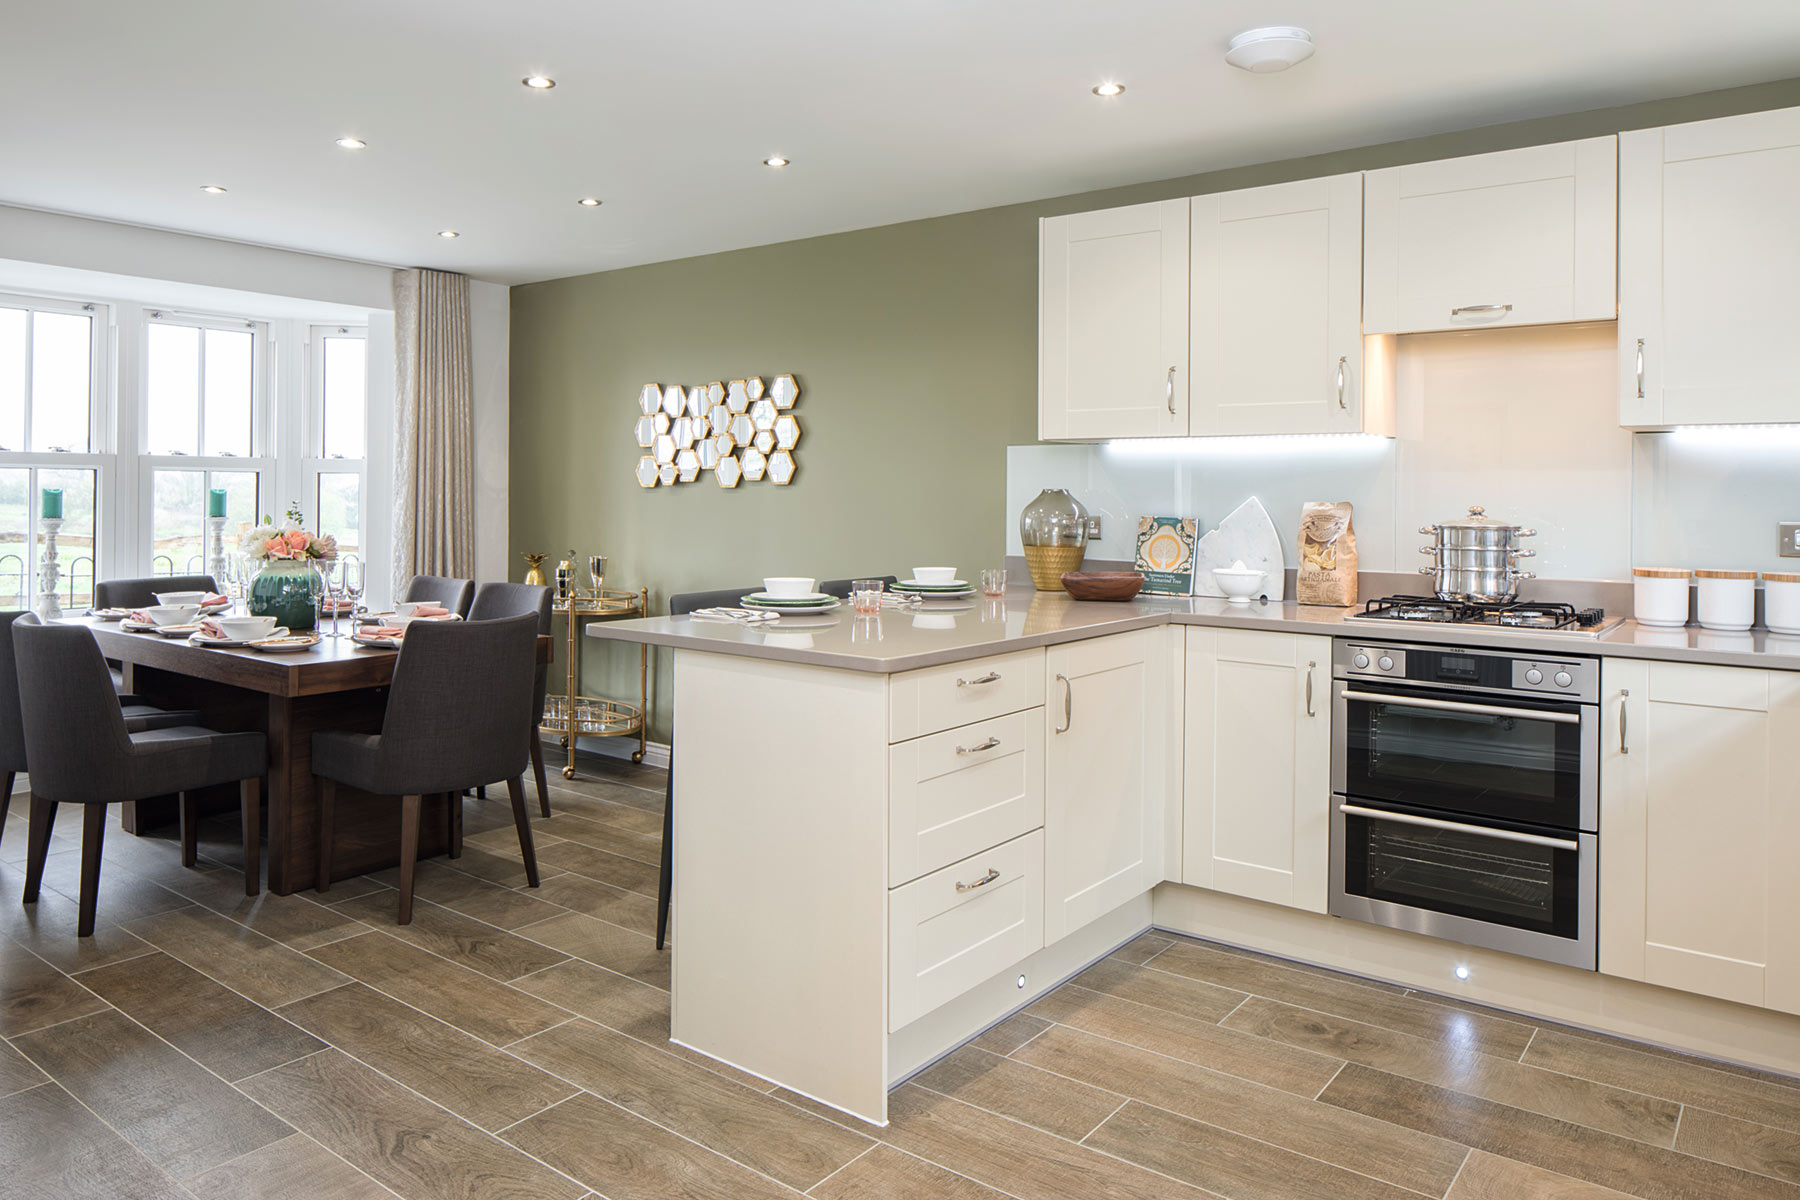 TW Exeter - Copleston Heights - Eskdale example kitchen